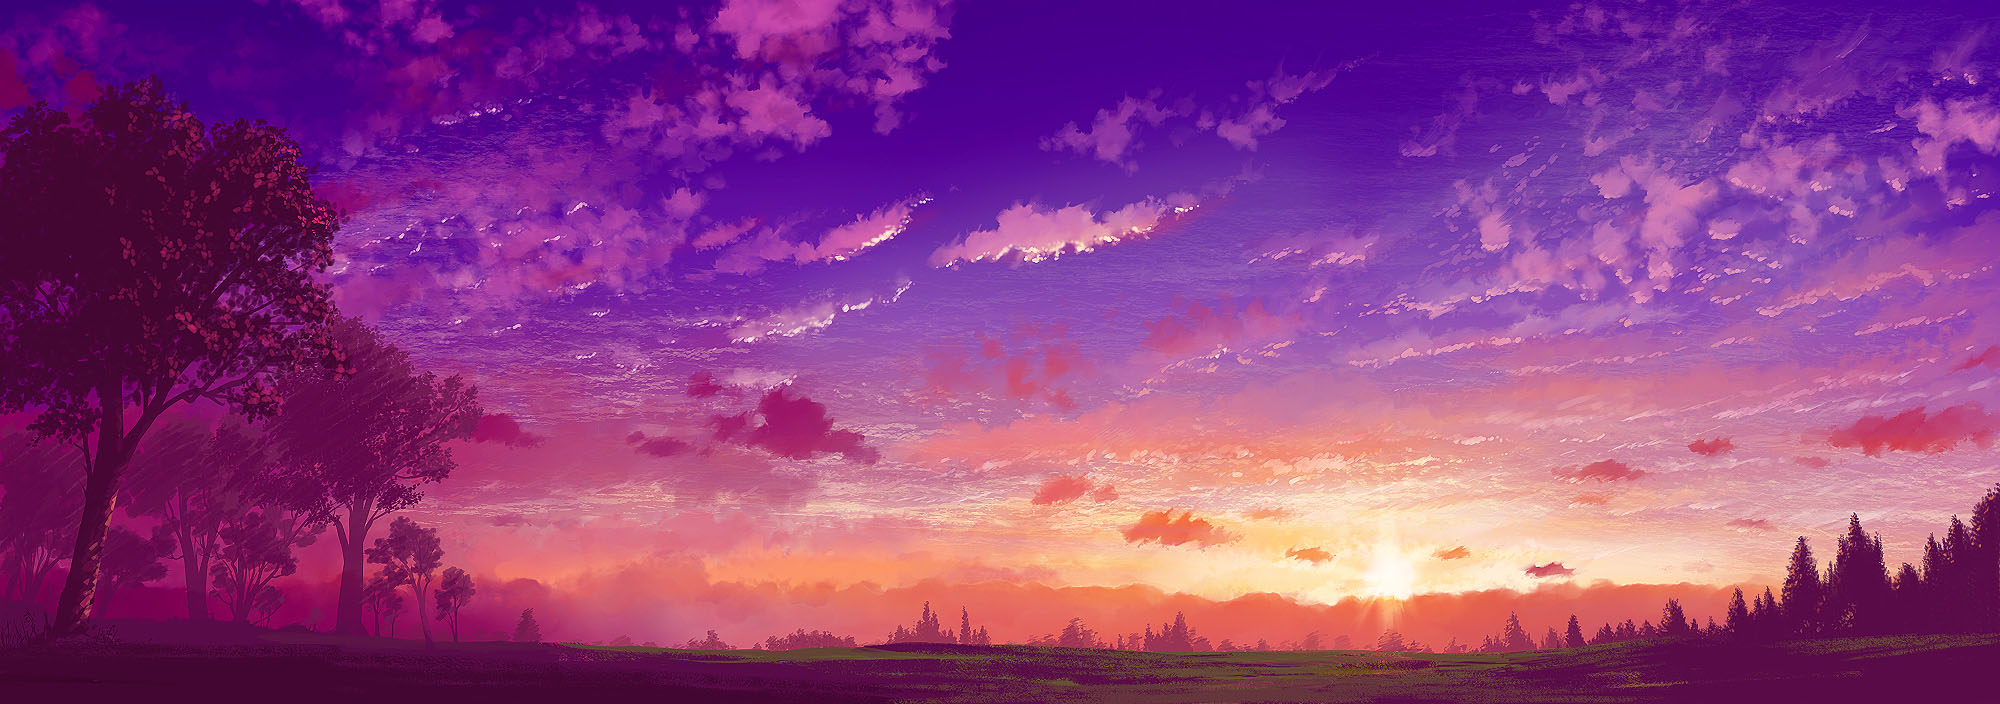 Anime Scenery Forest Tags Anime  108  artist